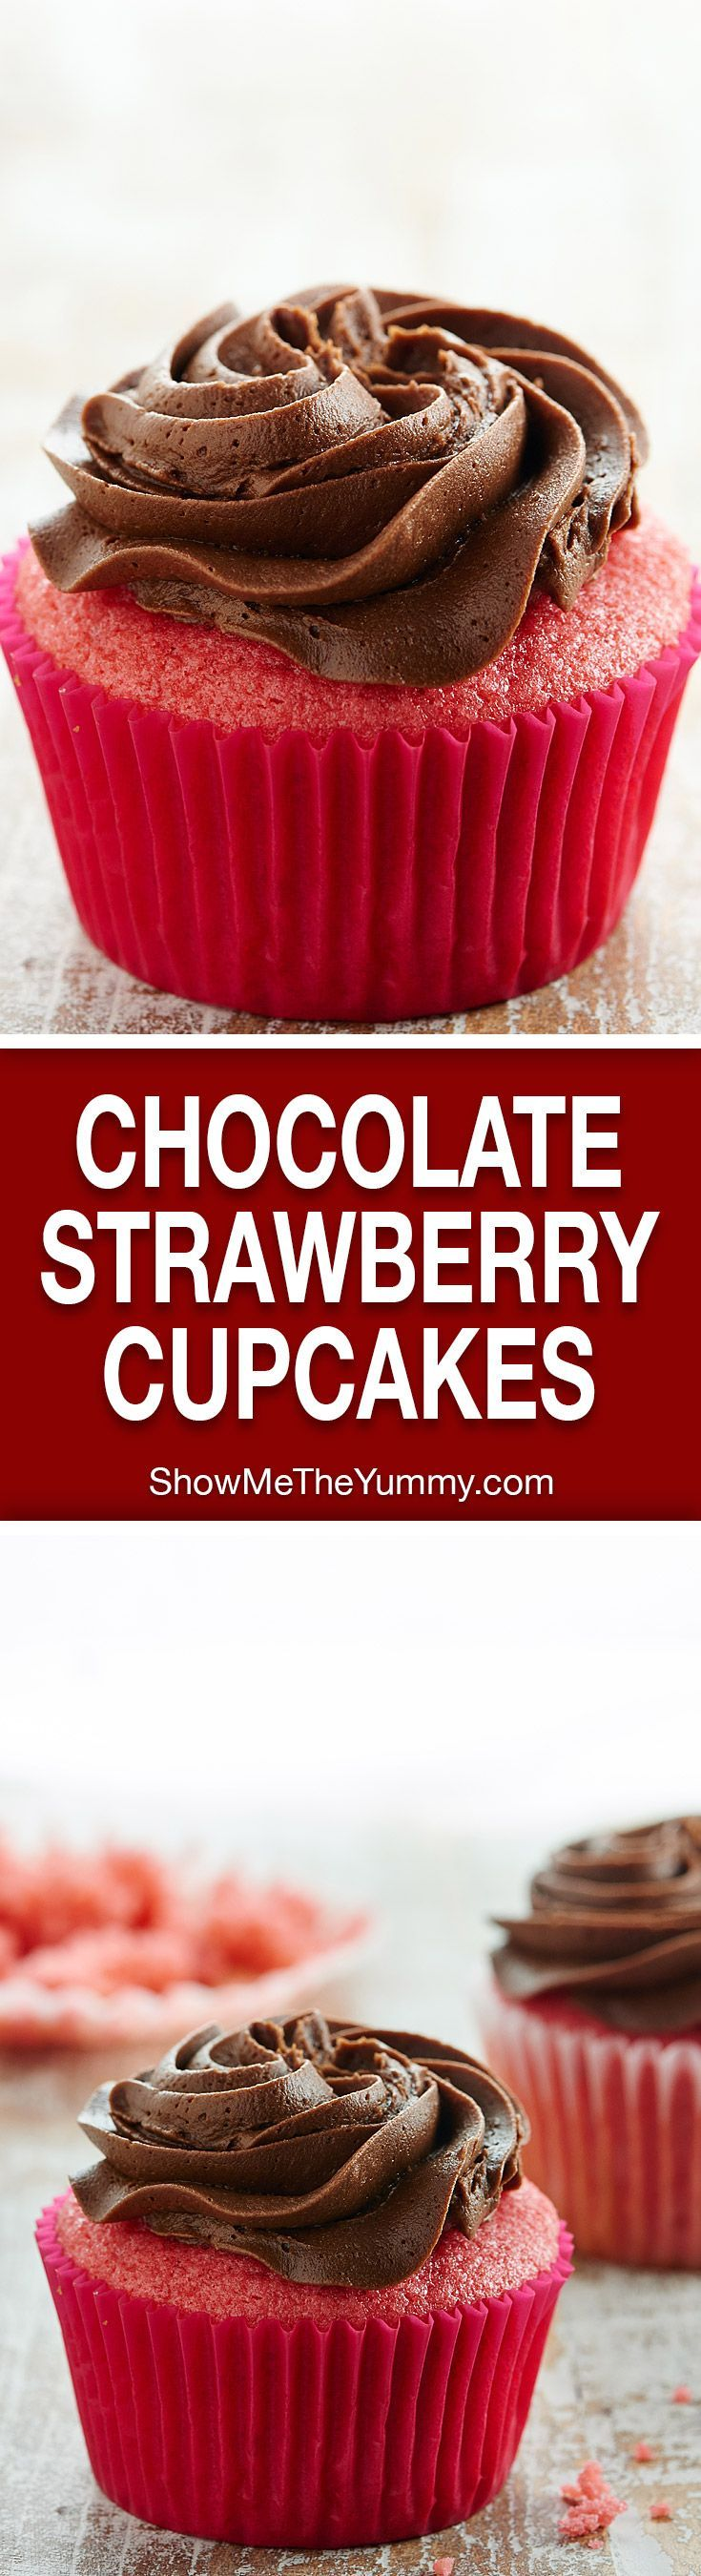 This Chocolate Strawberry Cupcakes Recipe is a twist on chocolate covered strawberries. A moist, strawberry cupcake is smothered in the creamiest chocolate buttercream! http://showmetheyummy.com #strawberrycupcake #chocolatebuttercream